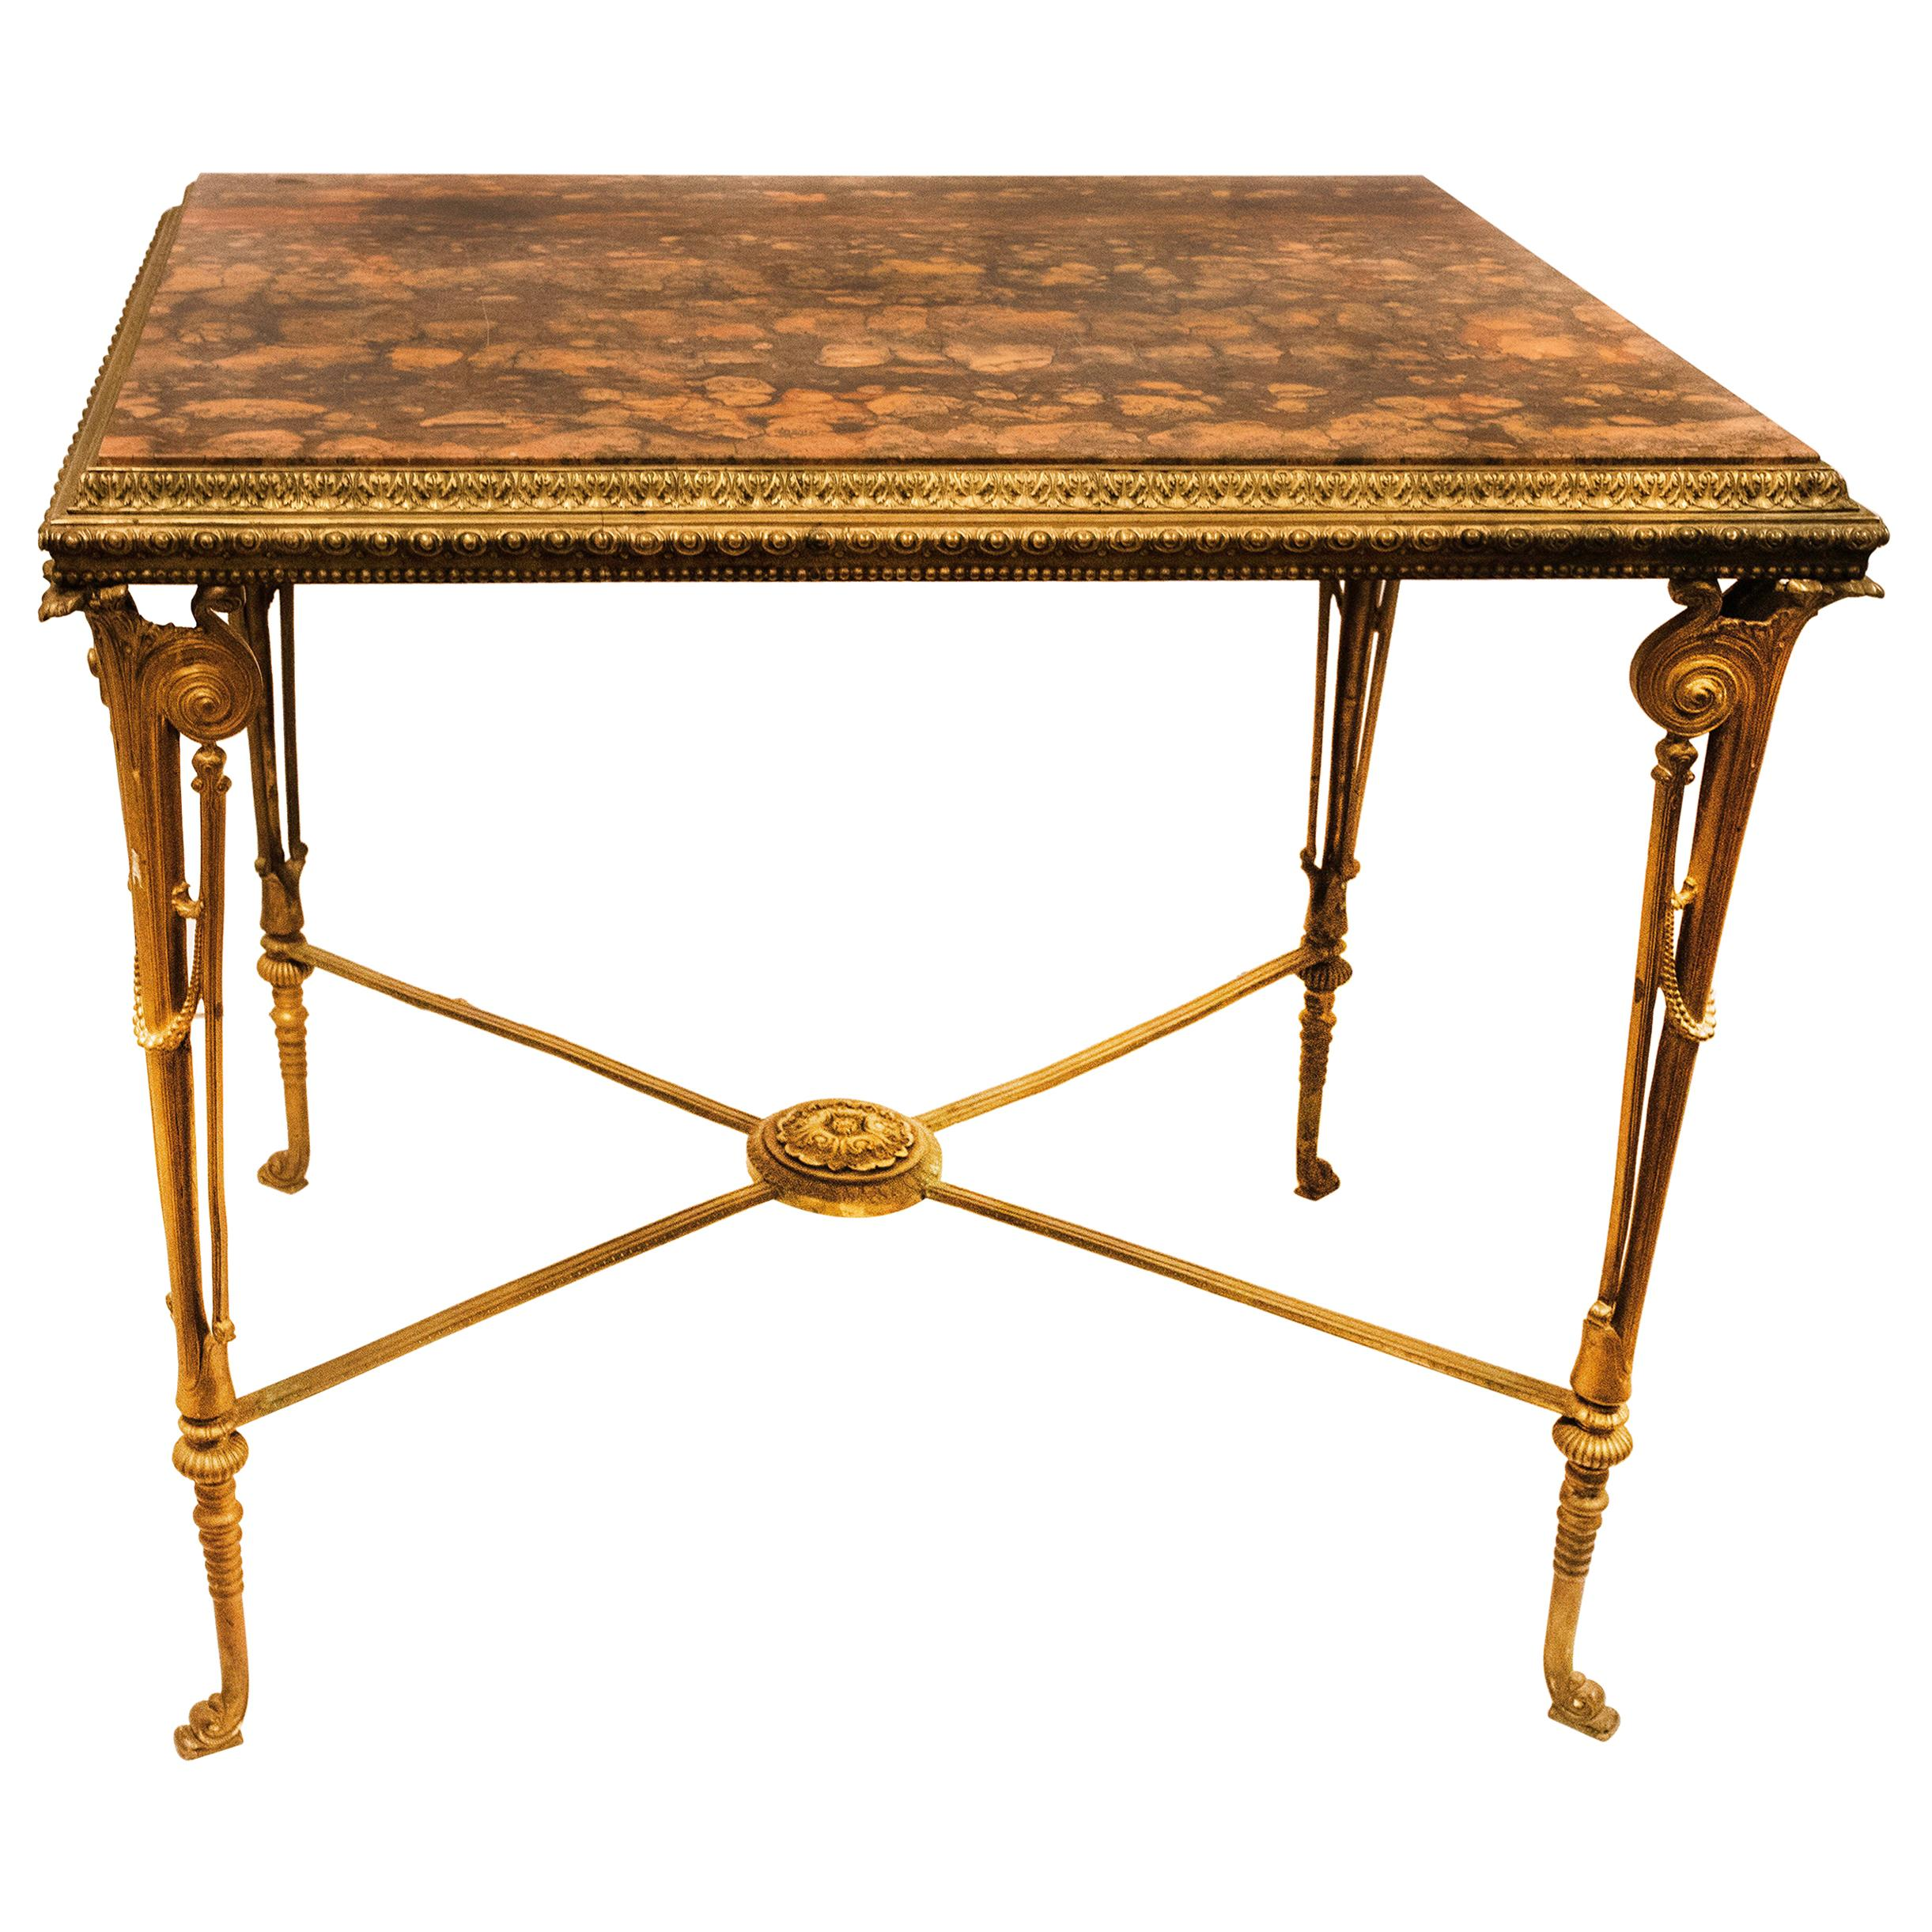 French 19 Century Neoclassical Style Bronze Marble-Top Center Table